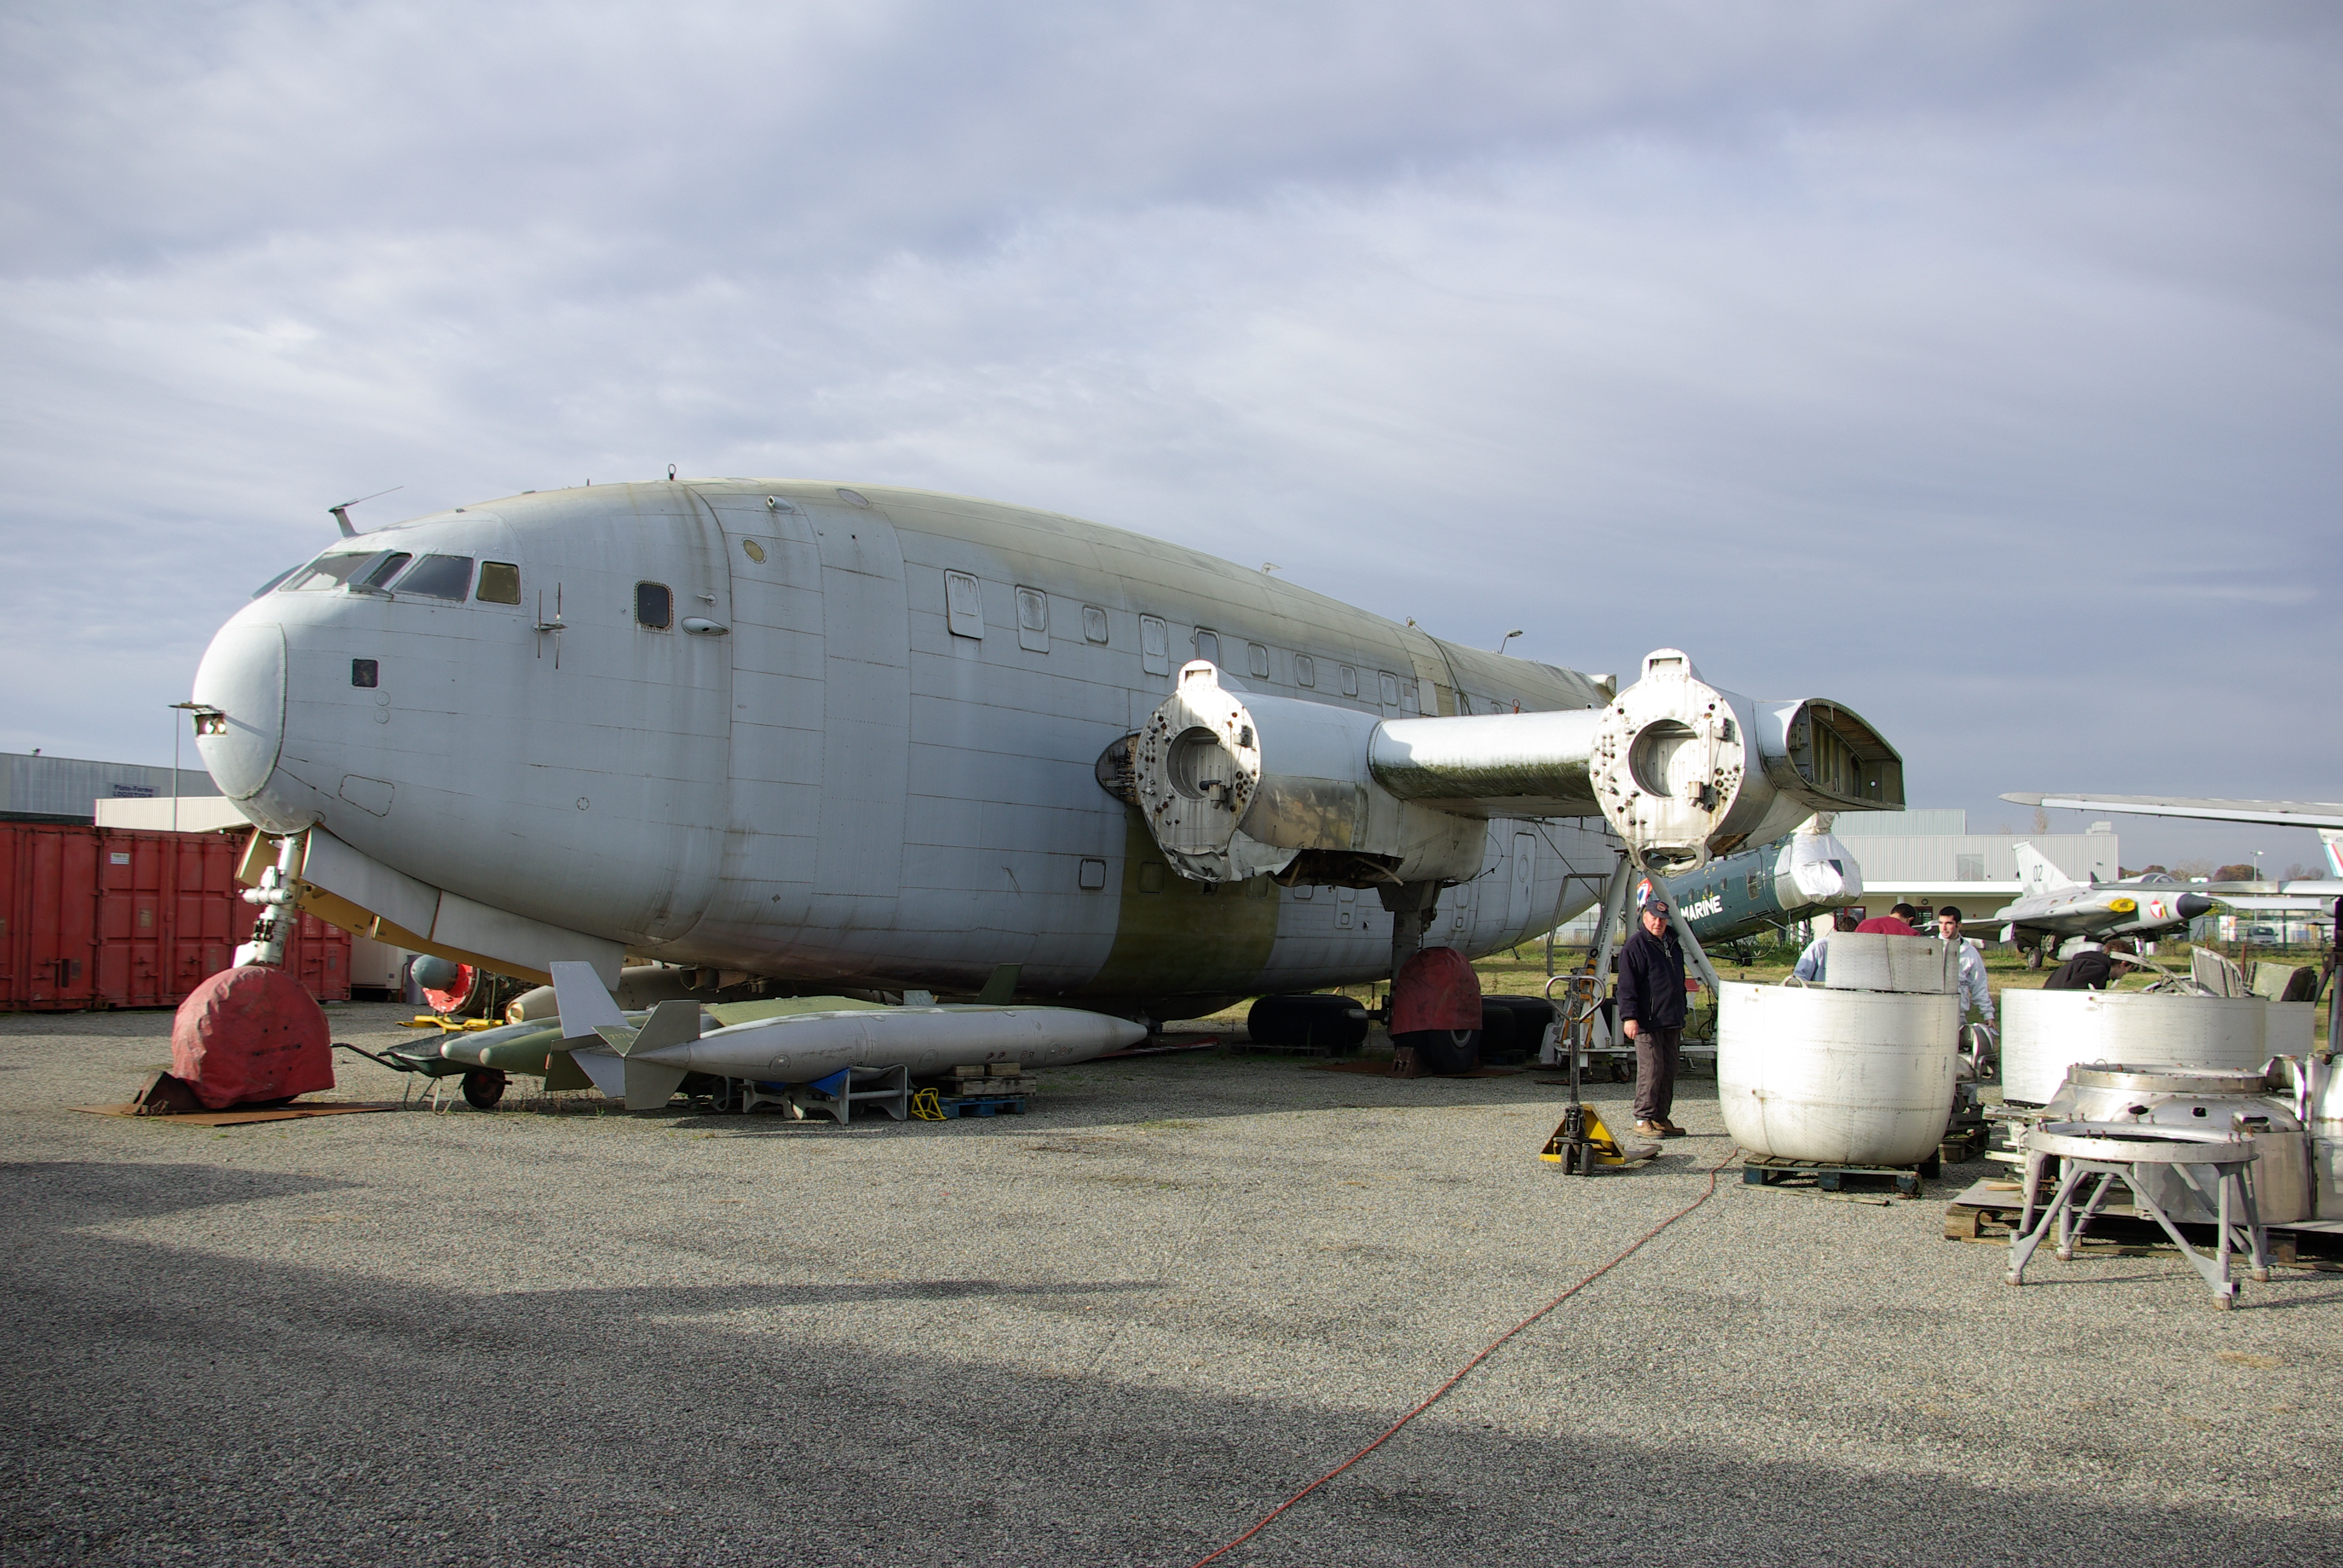 The current state of the restoration of the Breguet 765 (Photo Credit: Wikimedia Commons)